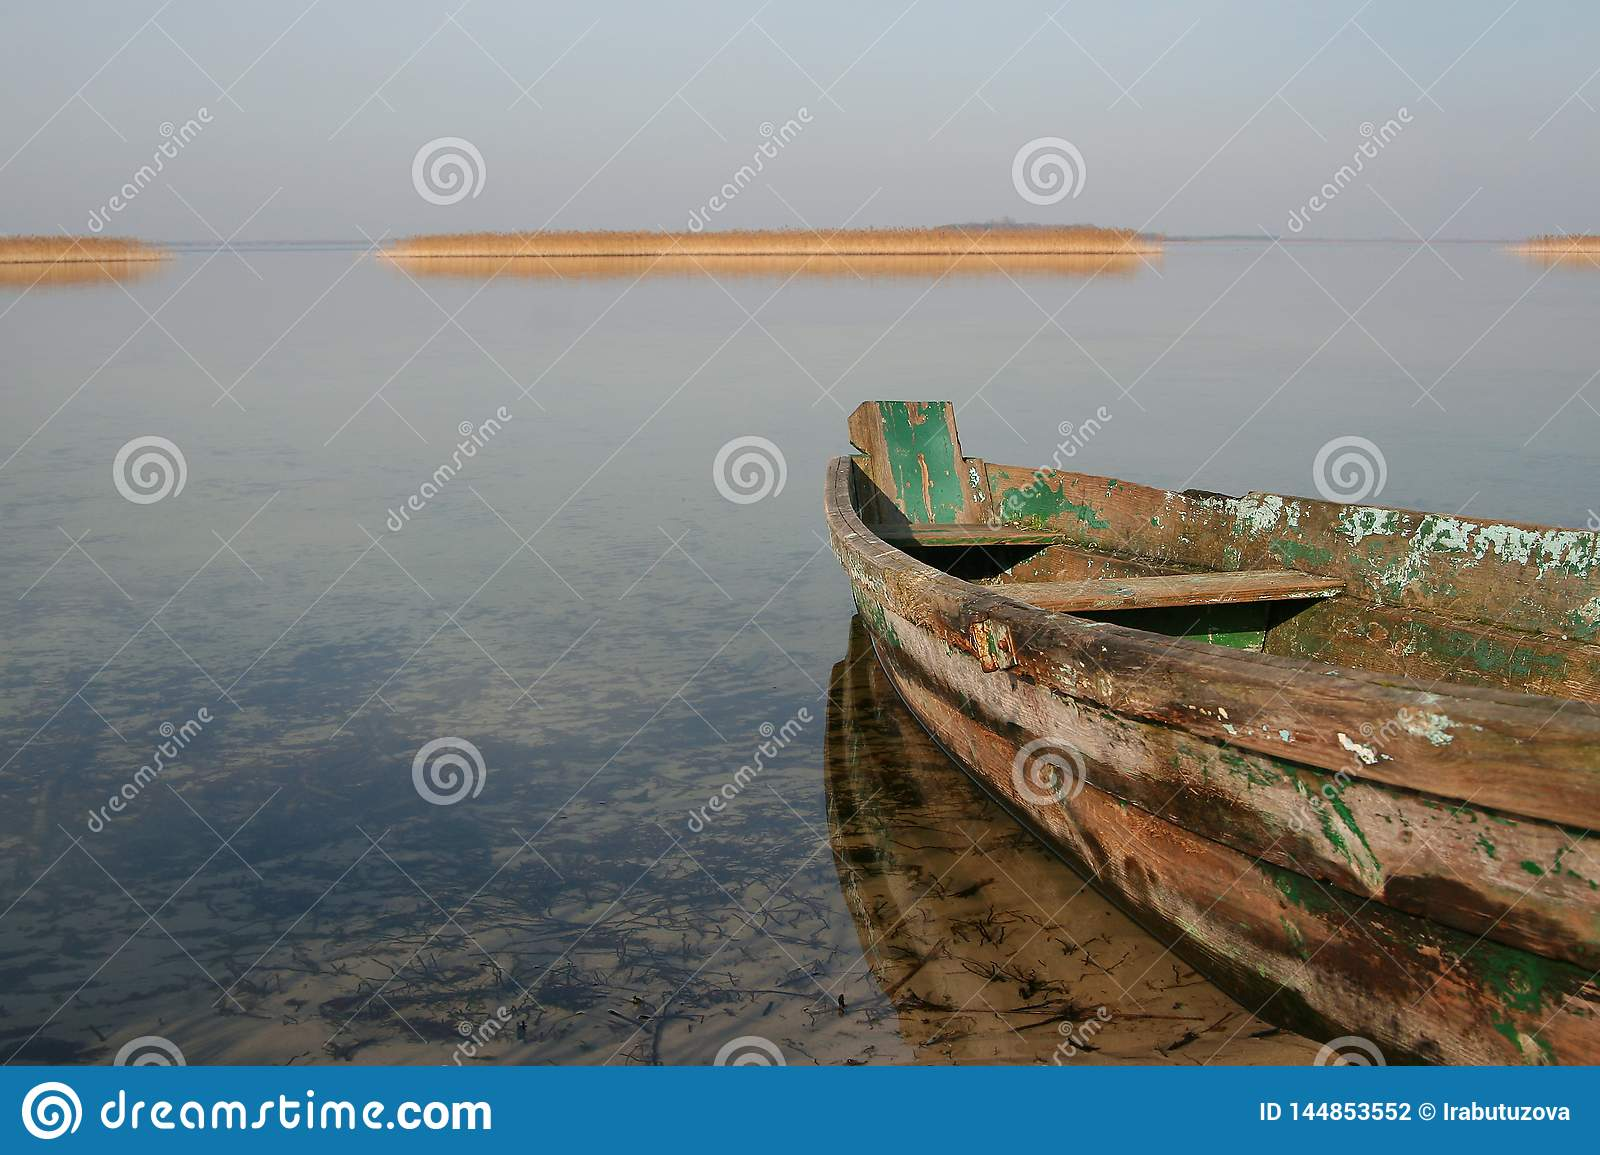 Old wooden boat on clear water